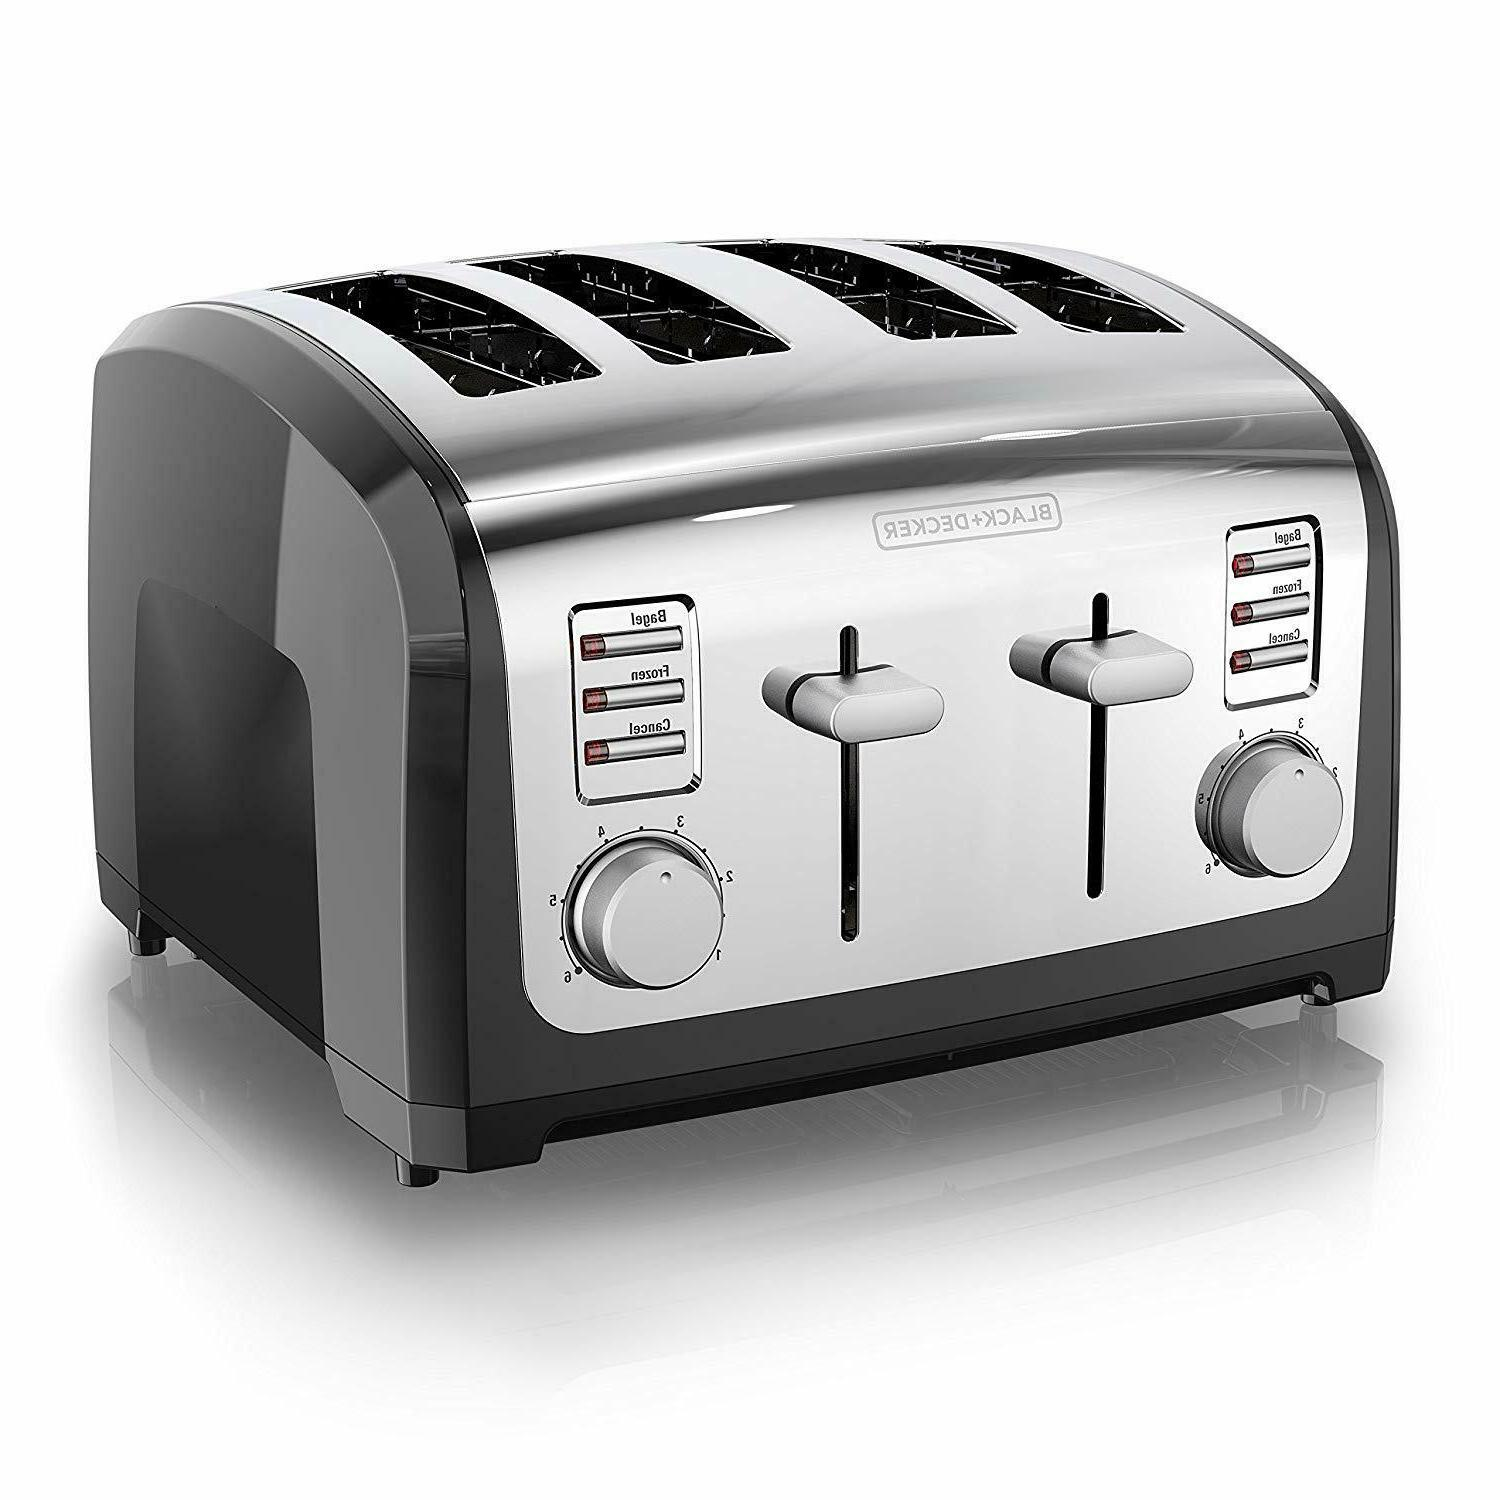 4 slice toaster multi function extra wide